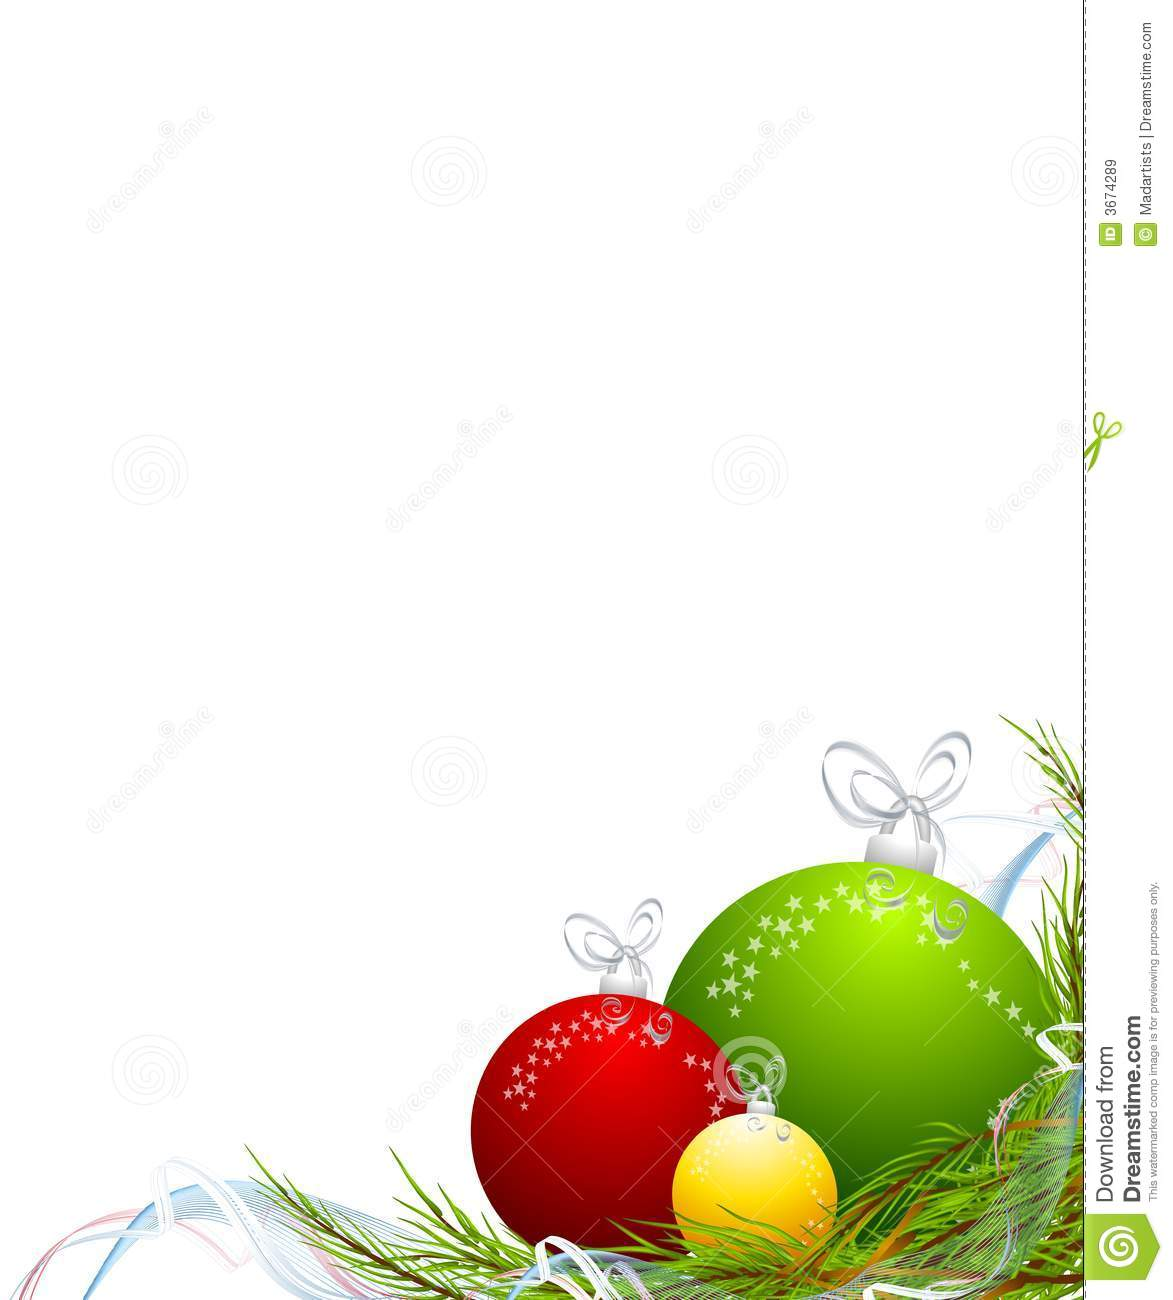 Christmas Ornaments Corner Border Royalty Free Stock Images - Image ...